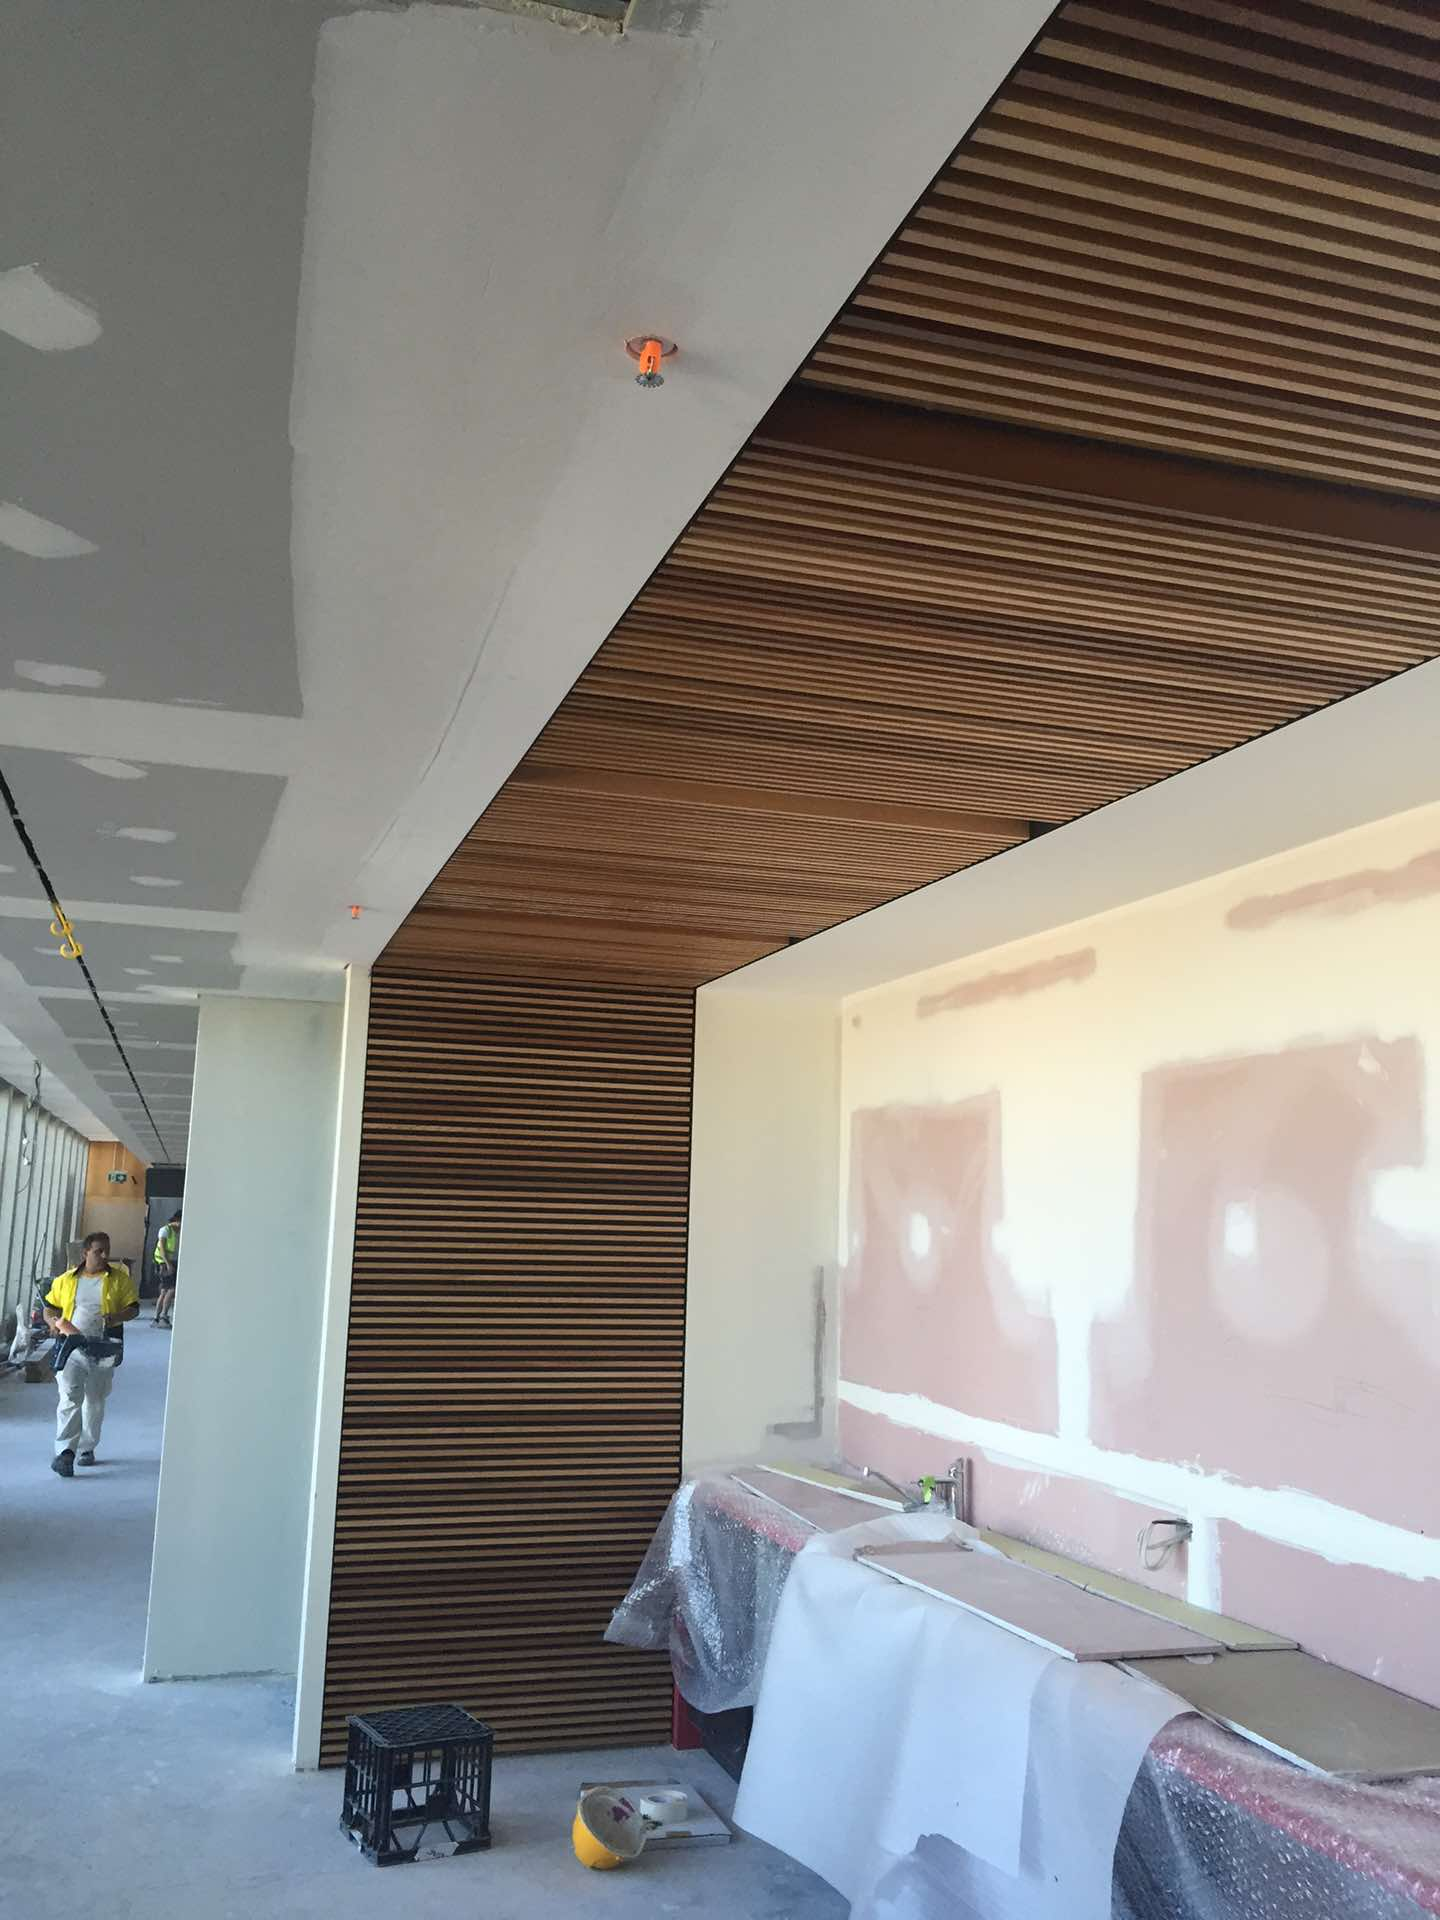 Cedar Wall Paneling Installed By GS At The NSW Uni Kensington, NSW